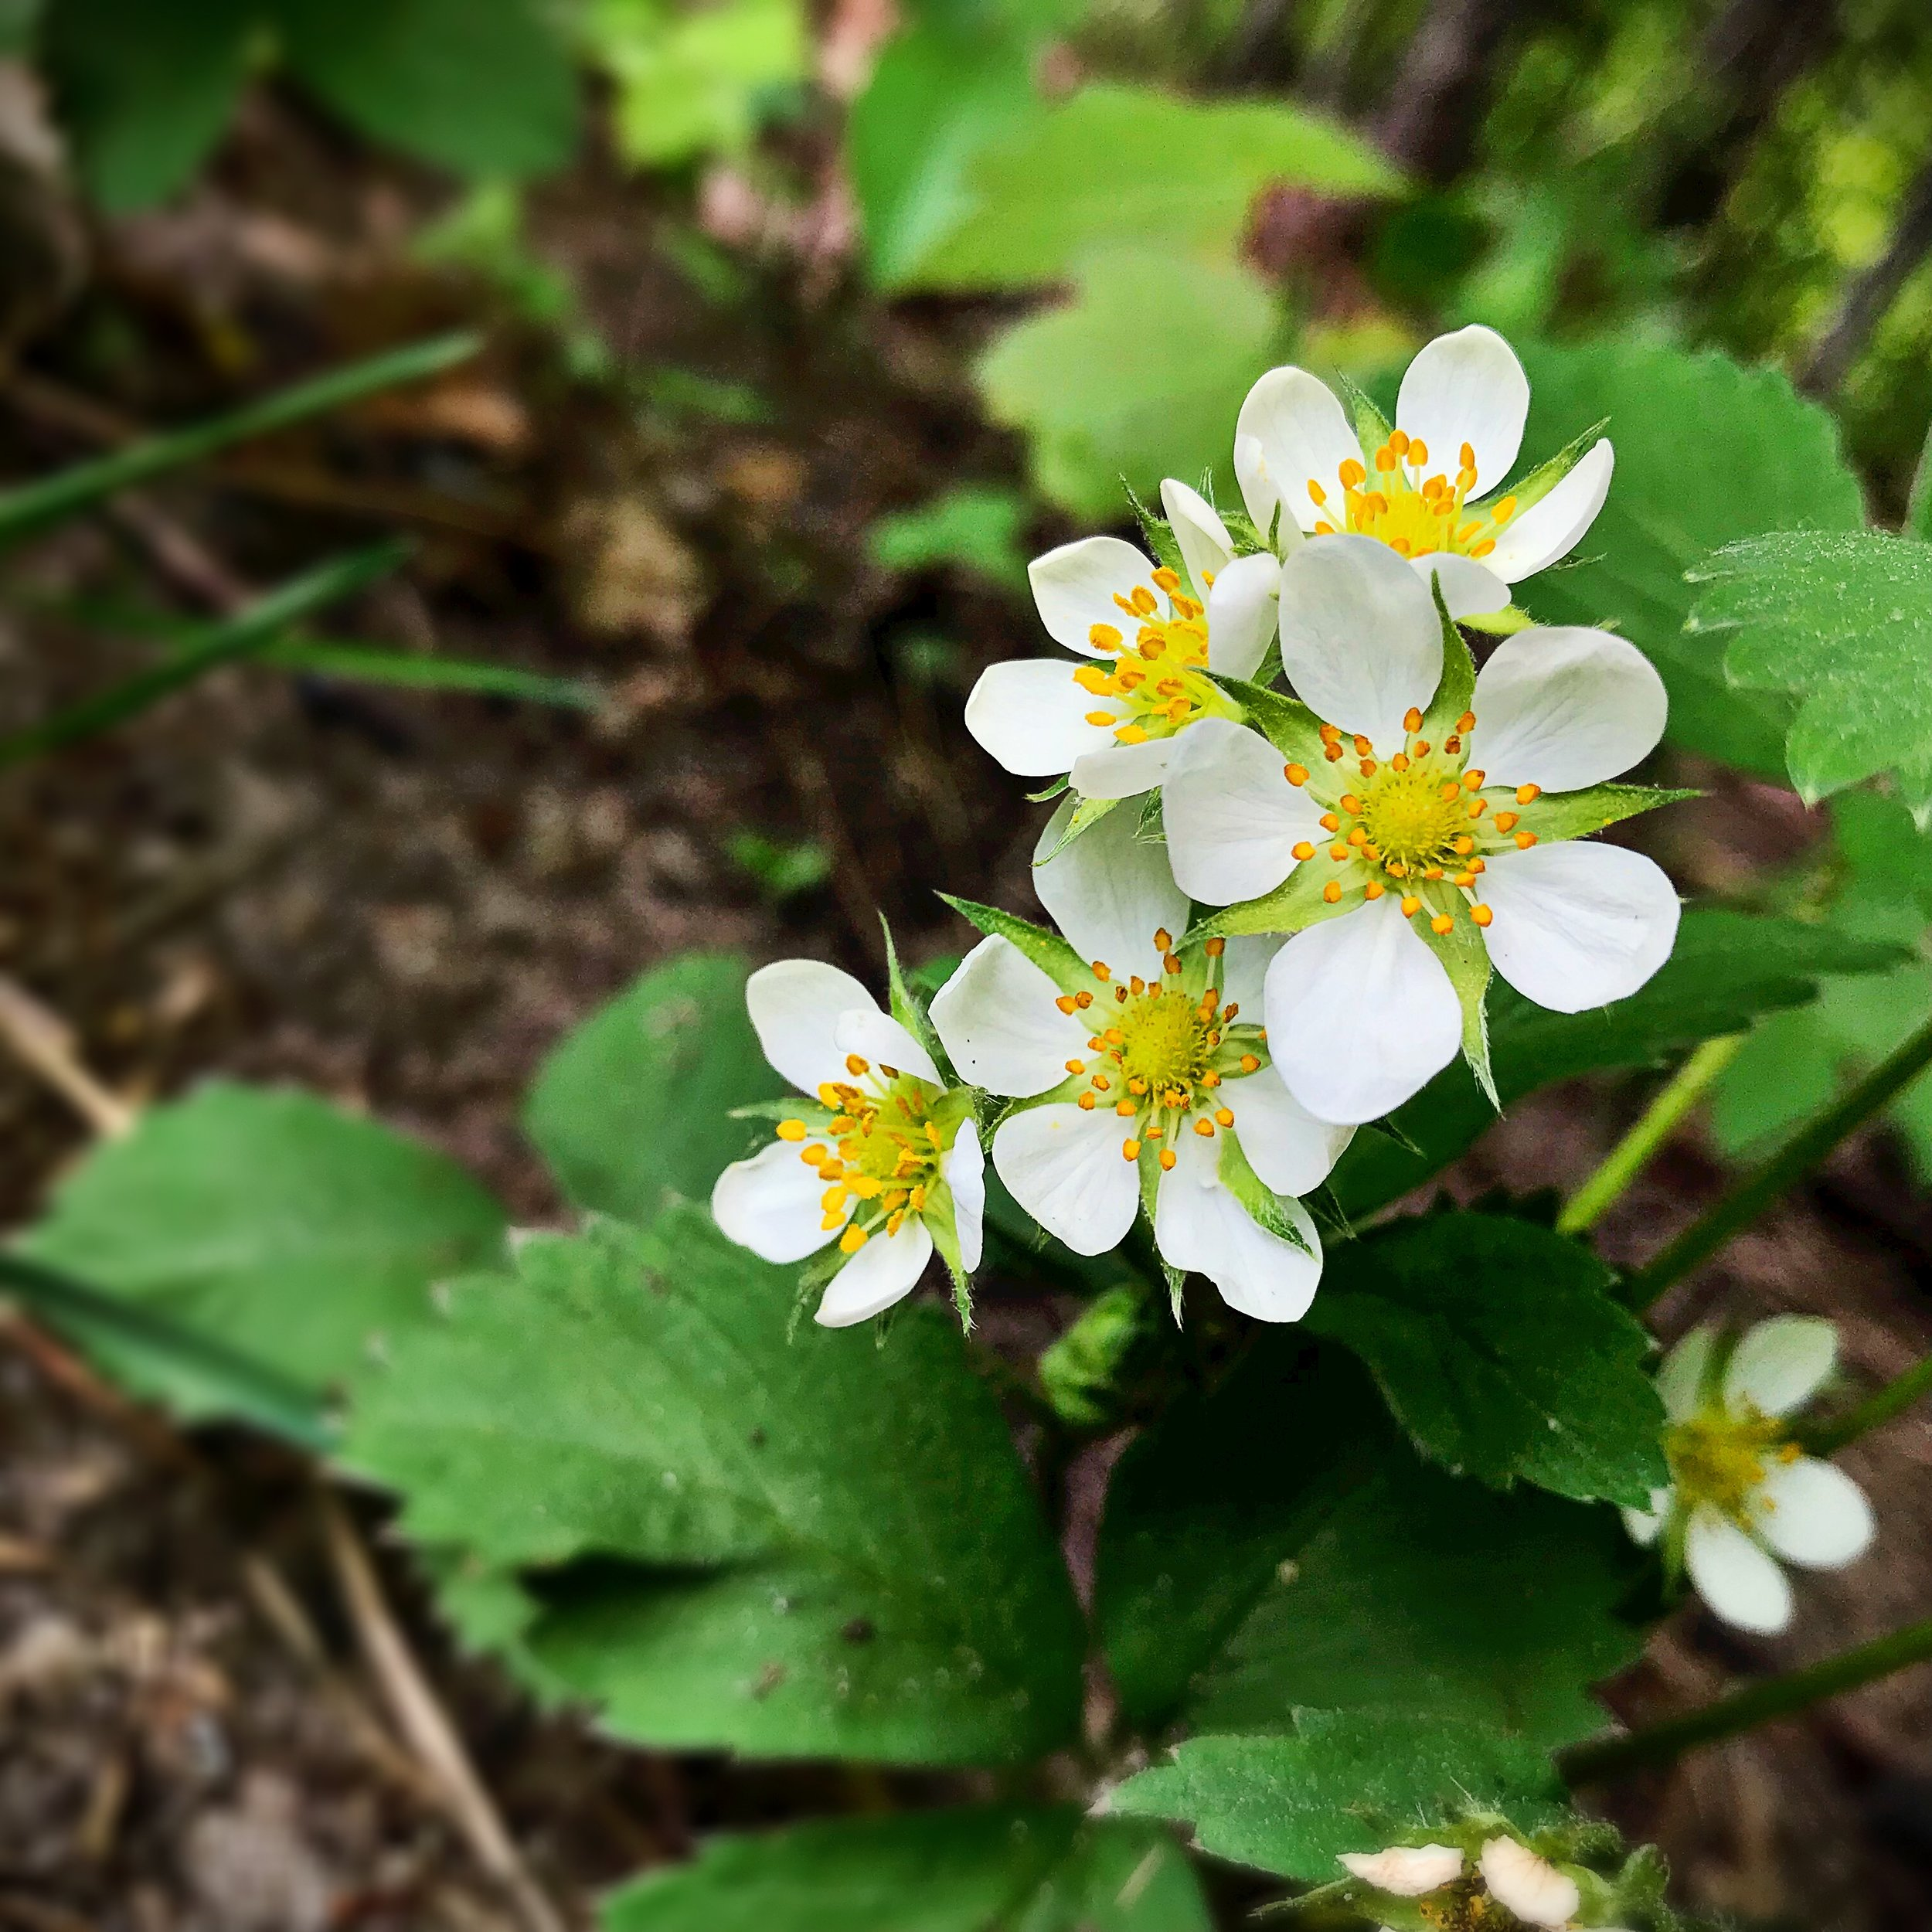 Woodland Strawberry  (Fragaria vesca ) at a rest stop off of I-75 somewhere north of Bay City, MI. (c) Erika Galentin